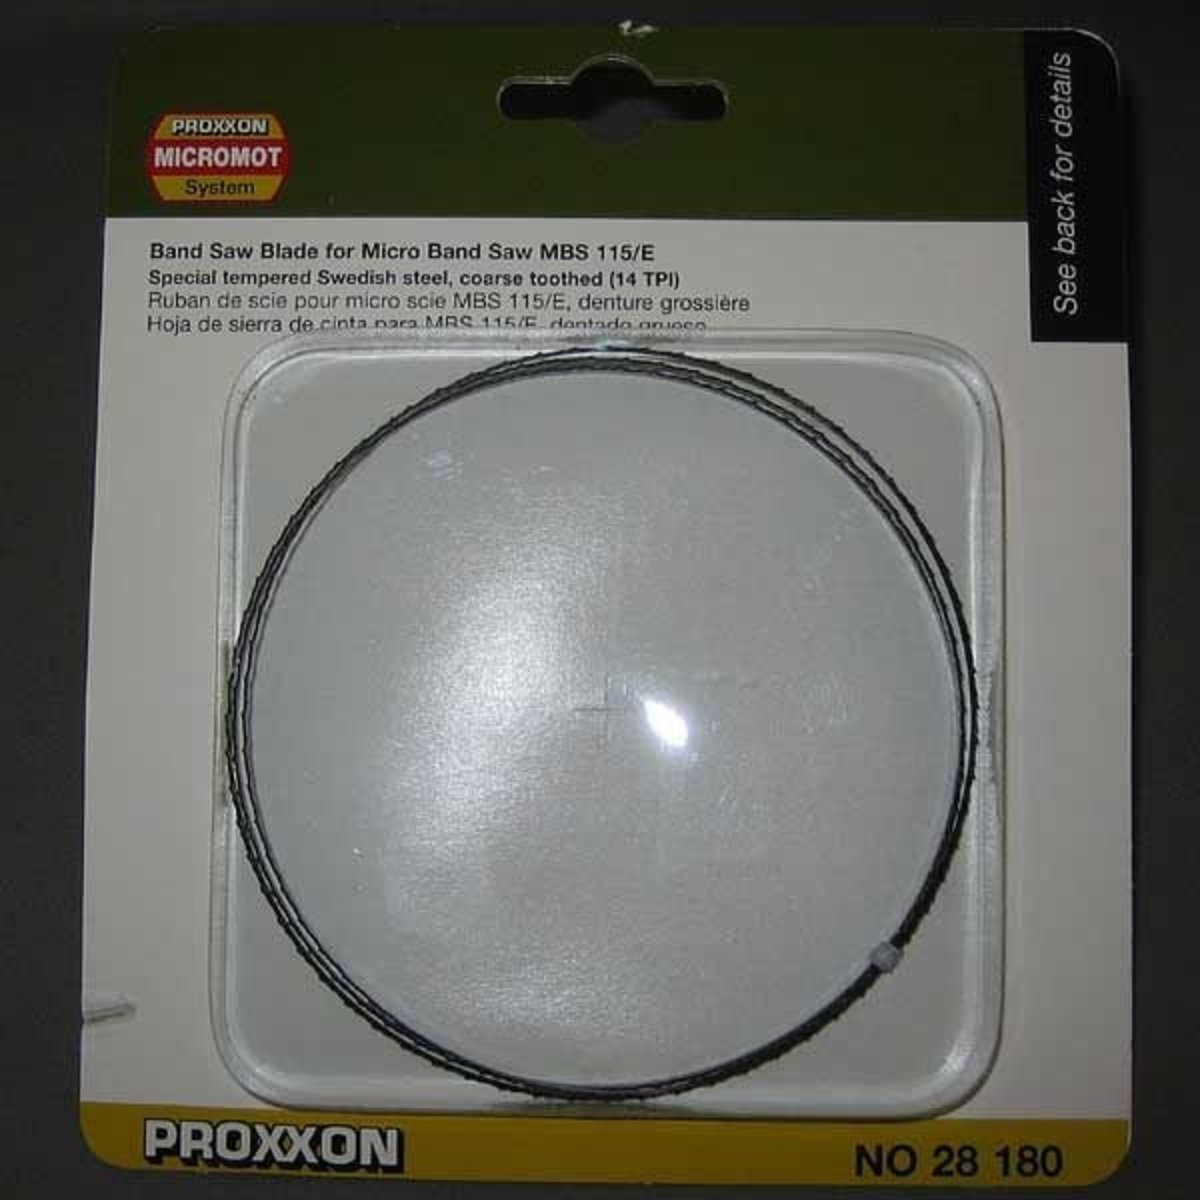 14 TPI coarse Proxxon 28180 Band saw blade for MBS//E special tempered